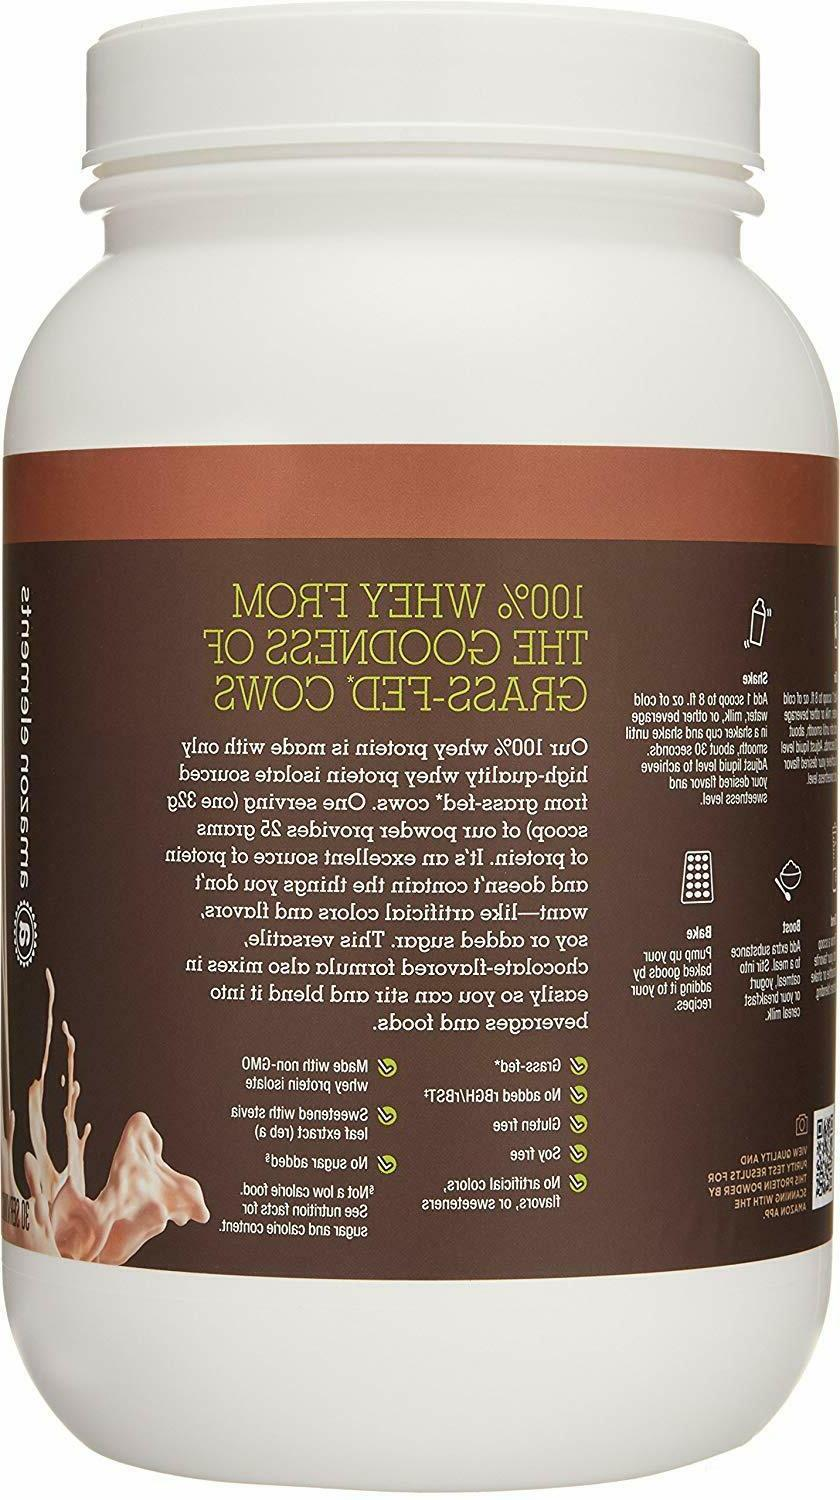 Isolate Powder,Natural Chocolate,2.11 Servings